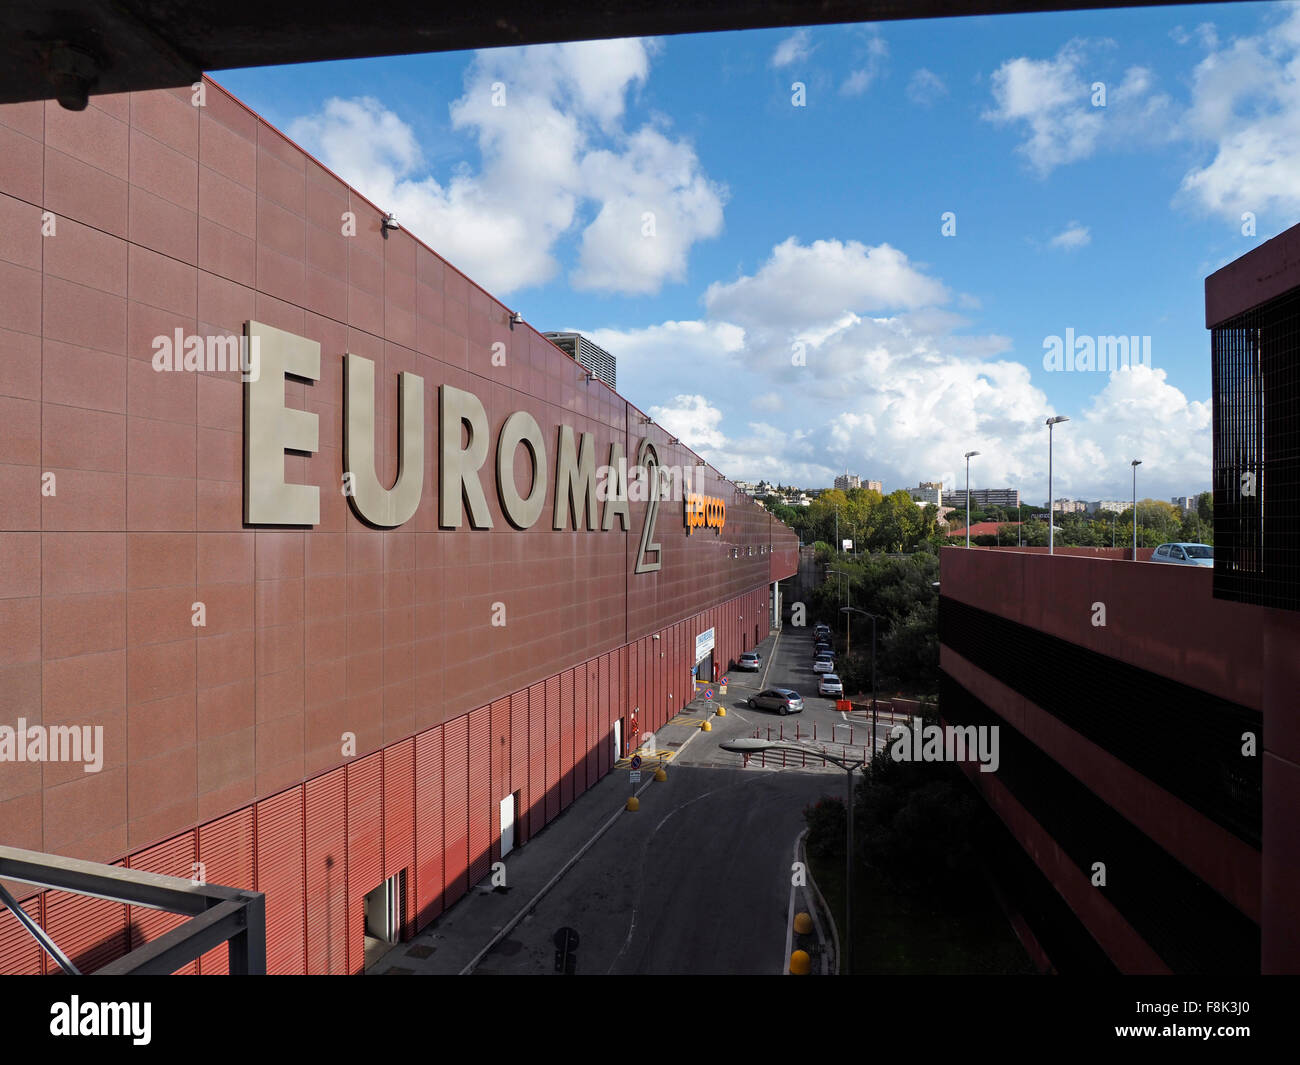 the huge Euroma2 luxury shopping mall in the EUR district of Rome, Italy - Stock Image